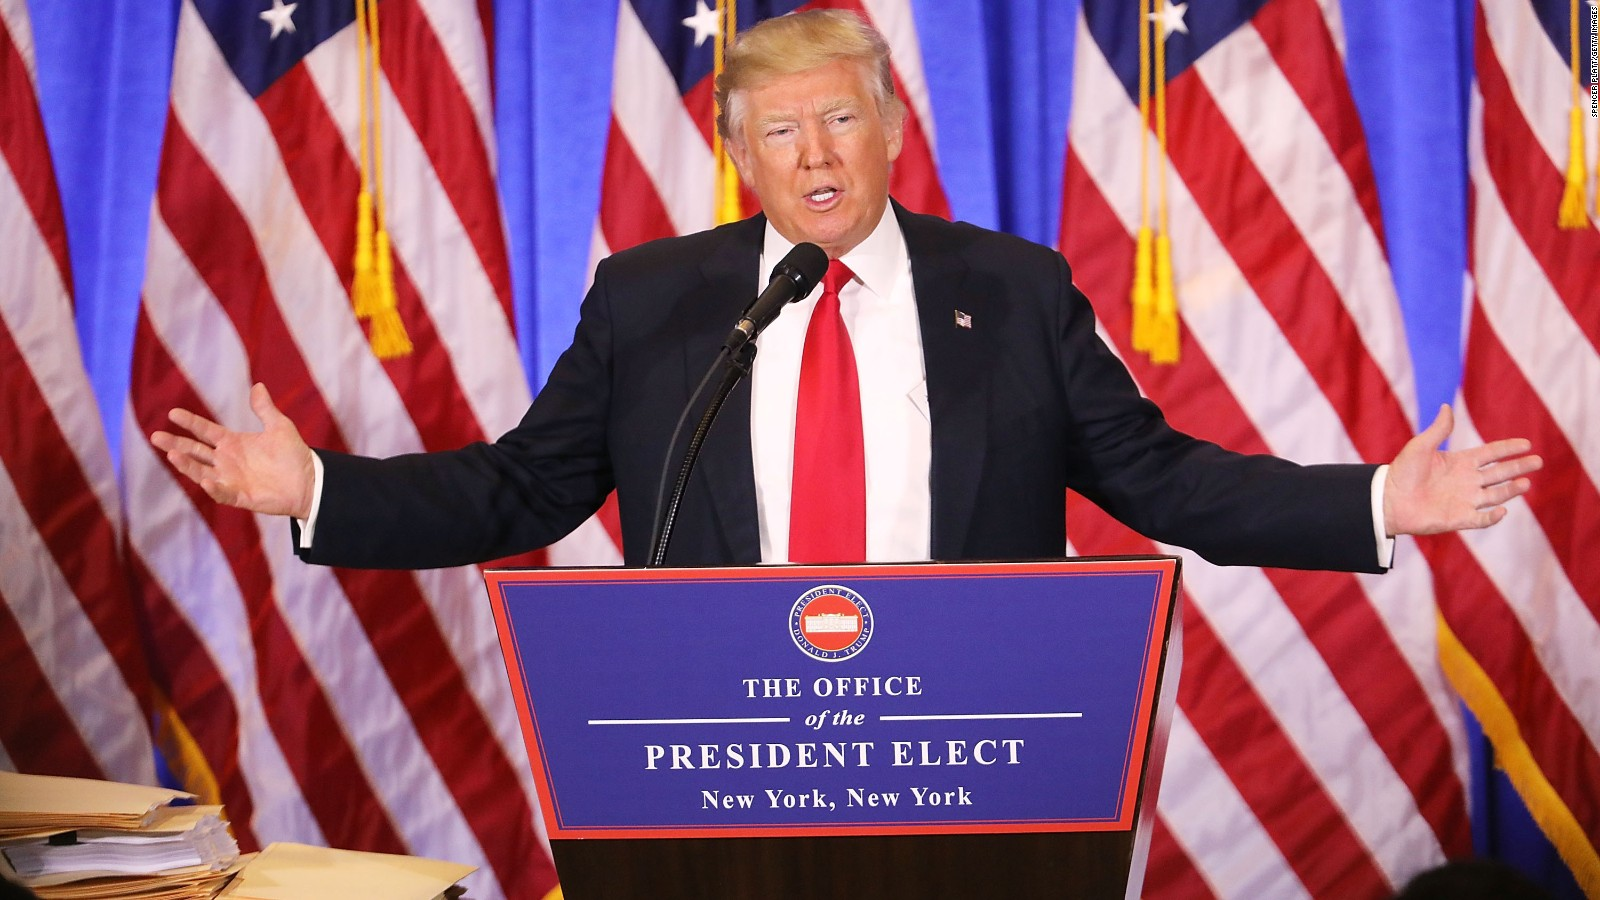 170111150932 trump presser 0111 full 169 everything trump has said about who hacked the us election cnnpolitics